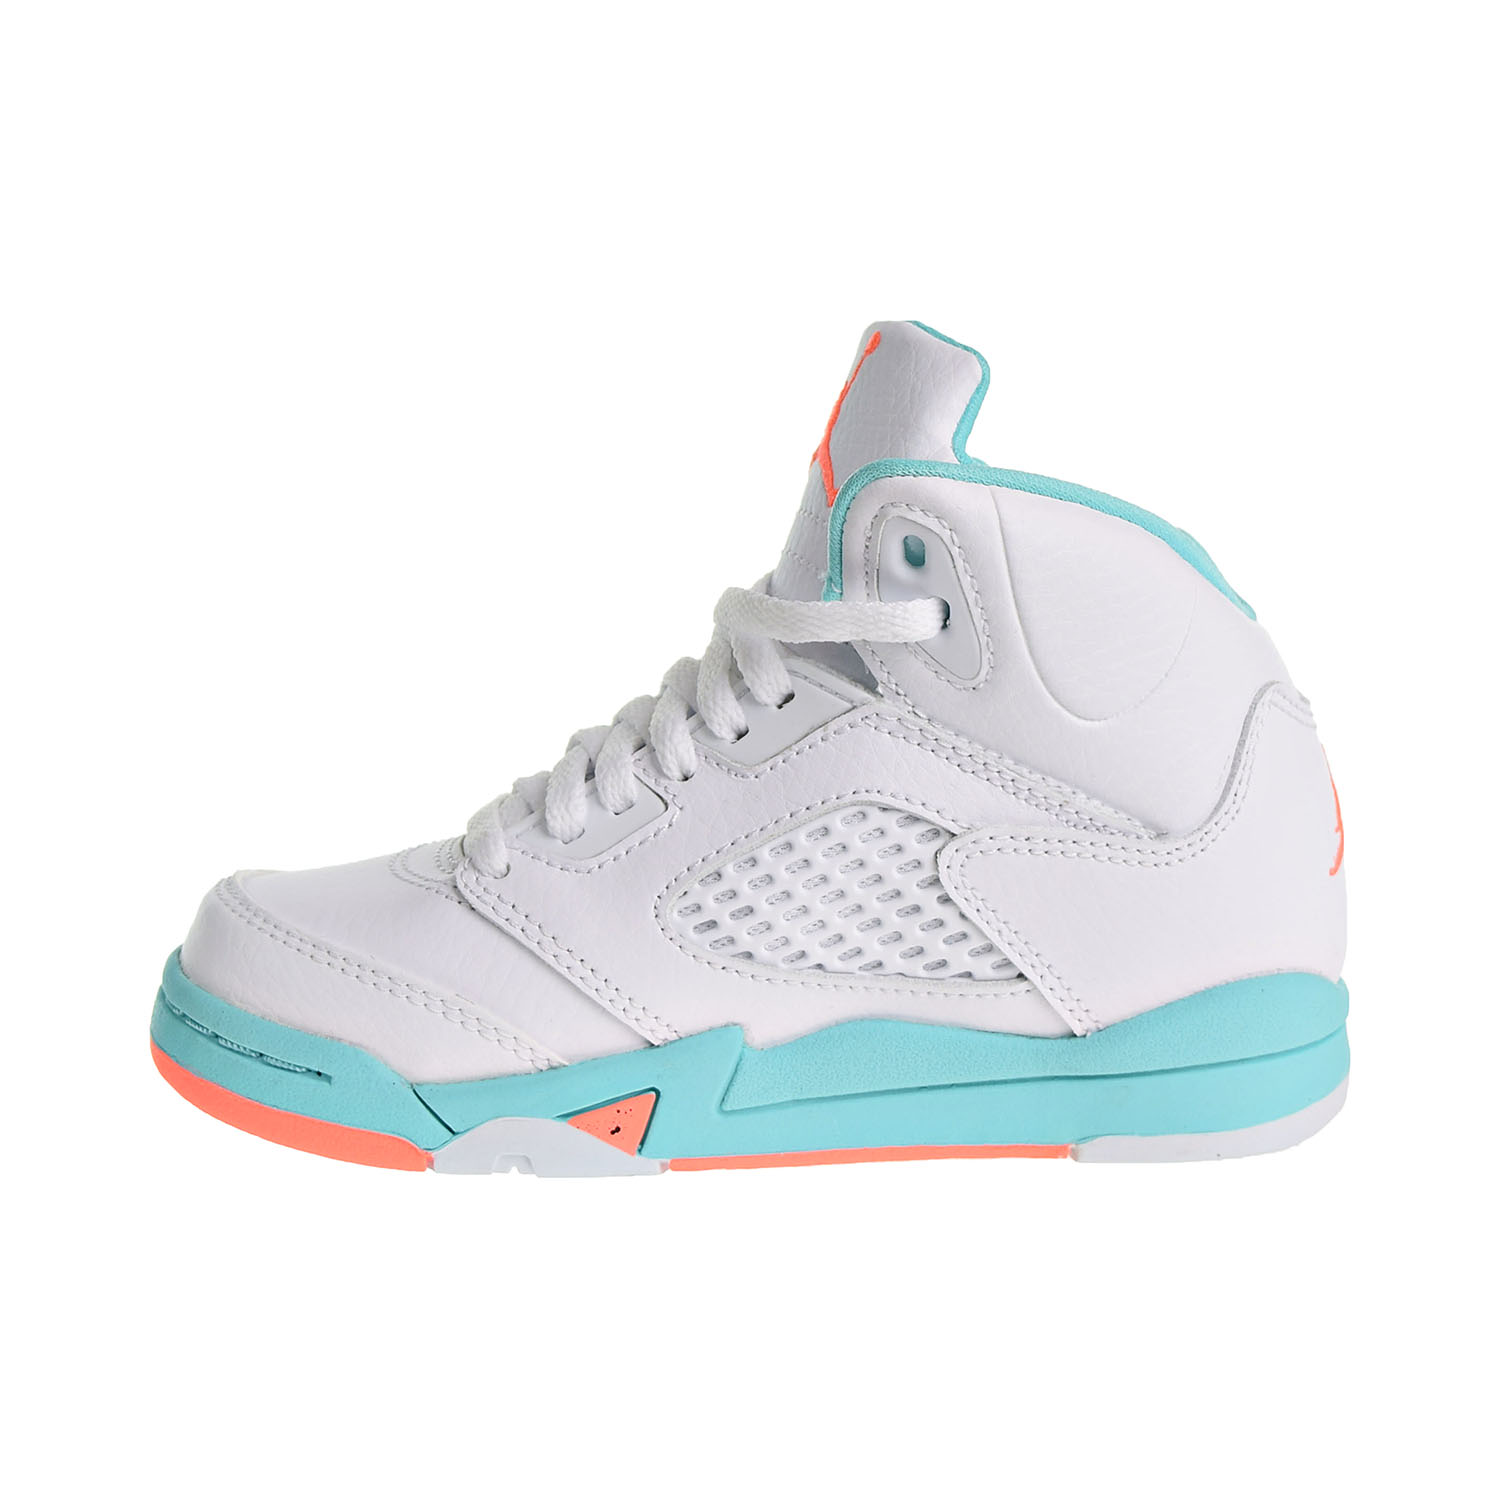 7af81731399 Jordan 5 Retro GP Little Kid's Shoes White/Crimson Pulse/Light Aqua 440893- 100